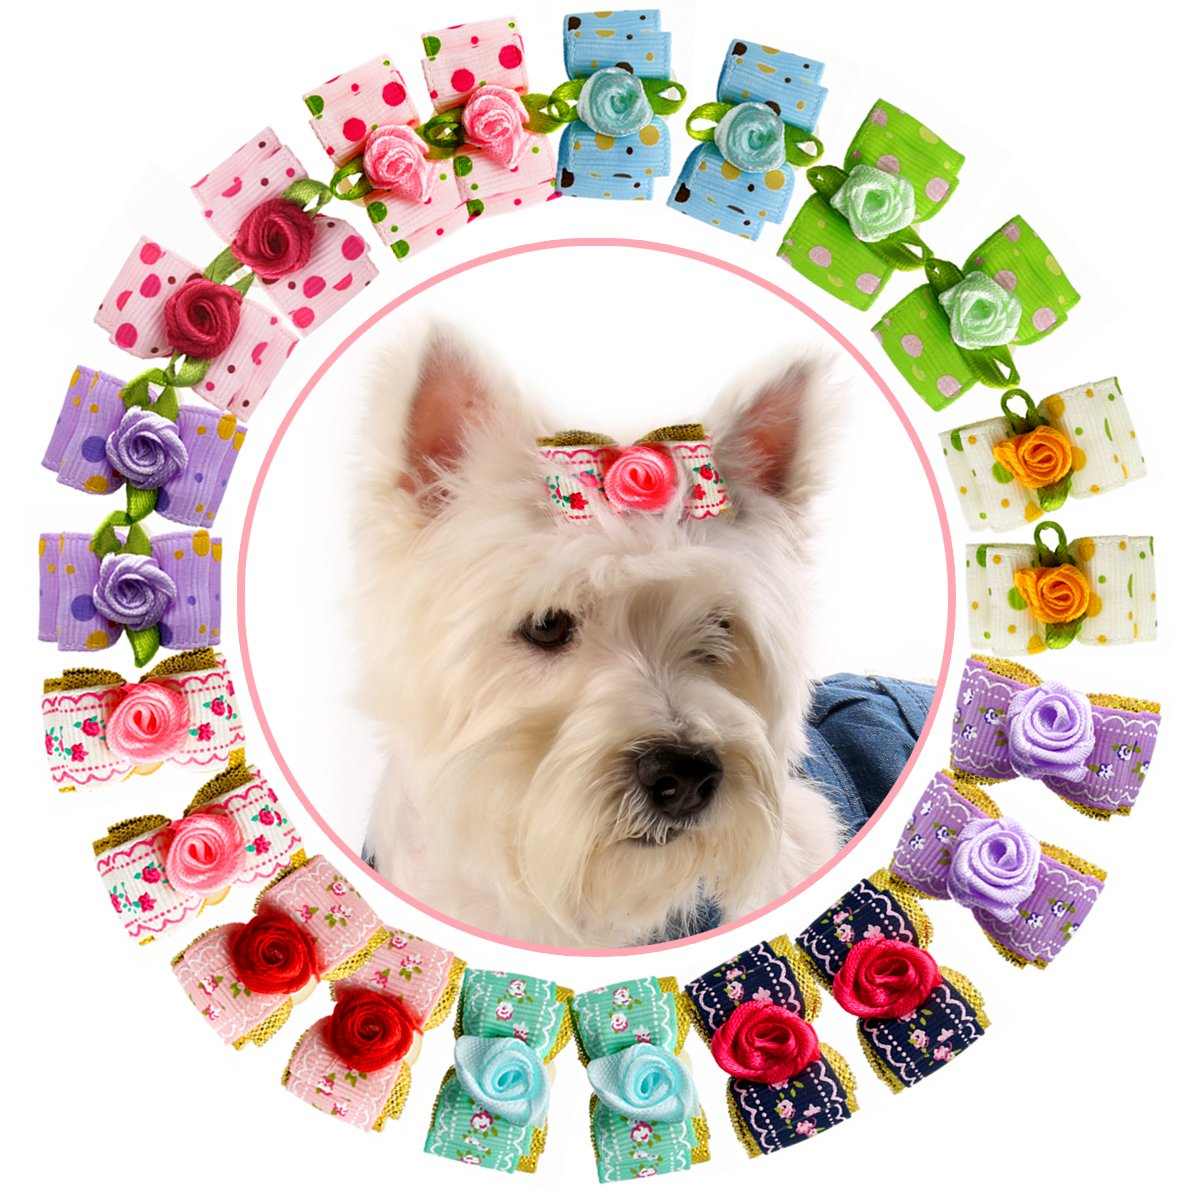 HOLLIHI 24 pcs/12 Pairs Adorable Grosgrain Ribbon Pet Dog Hair Bows with Elastic Rubber Bands – Doggy Kitty Bowknots Topknot Grooming Accessories Set for Long Hair Puppy Cat